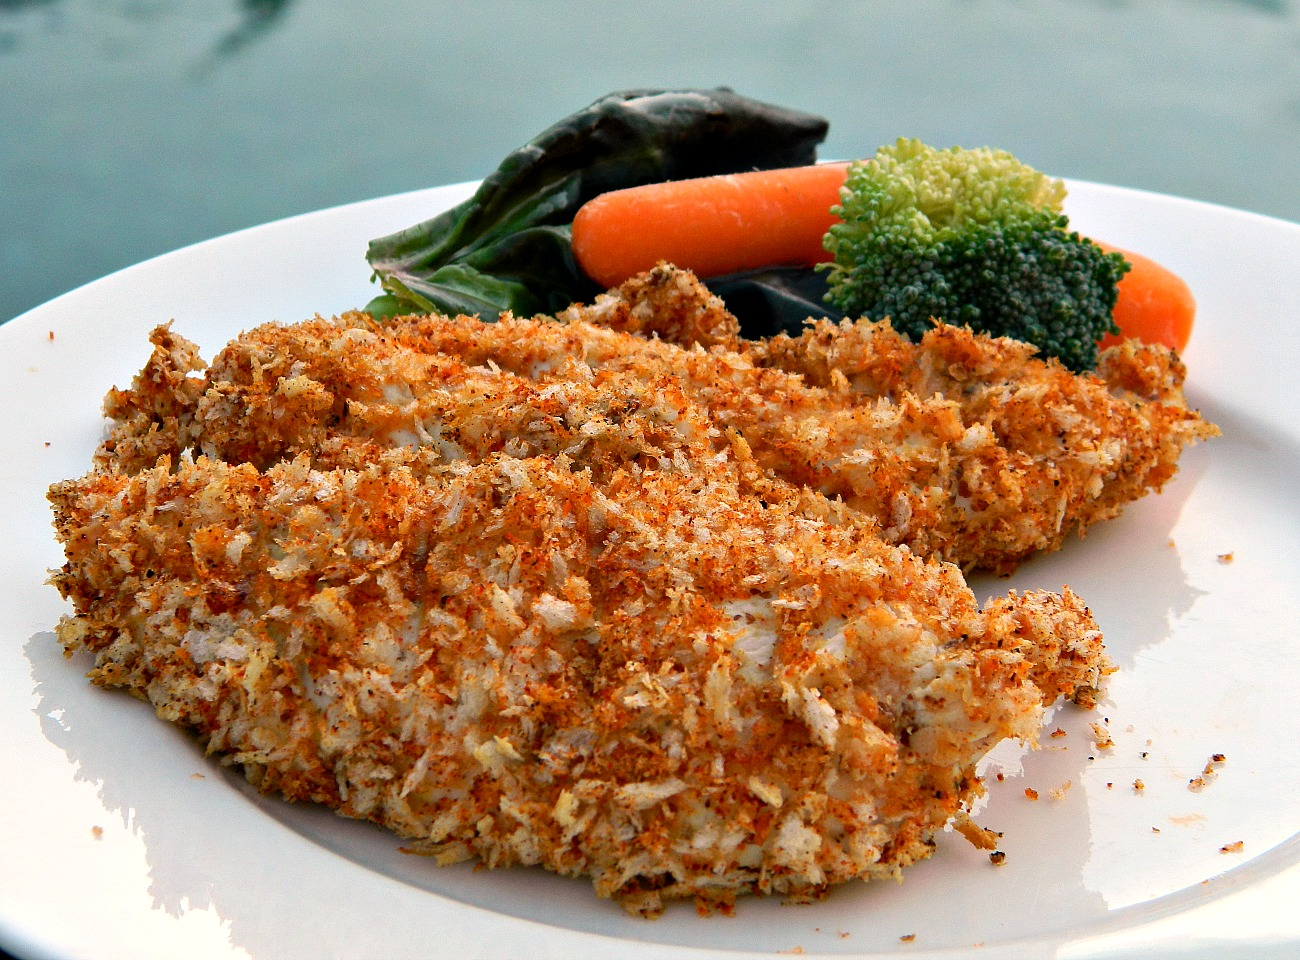 Baked Chicken Strips with Dijon and Panko Coating Baykat